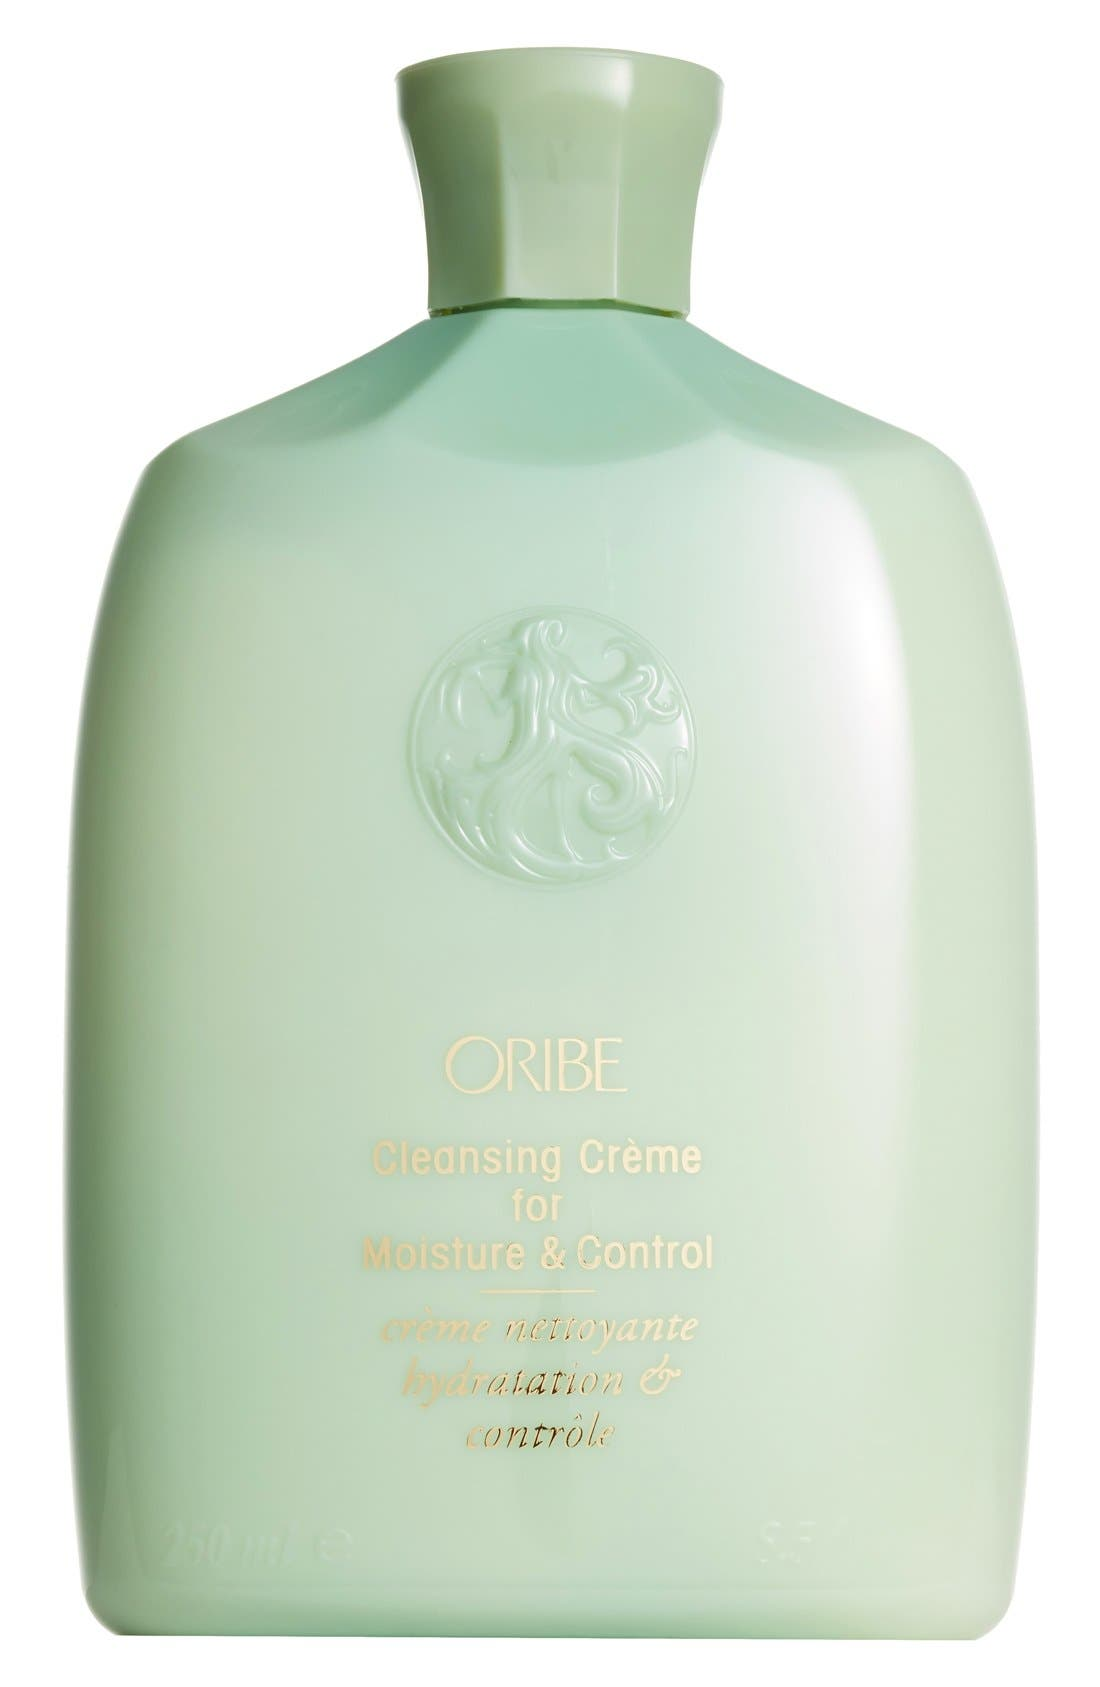 SPACE.NK.apothecary Oribe Cleansing Creme for Moisture & Control